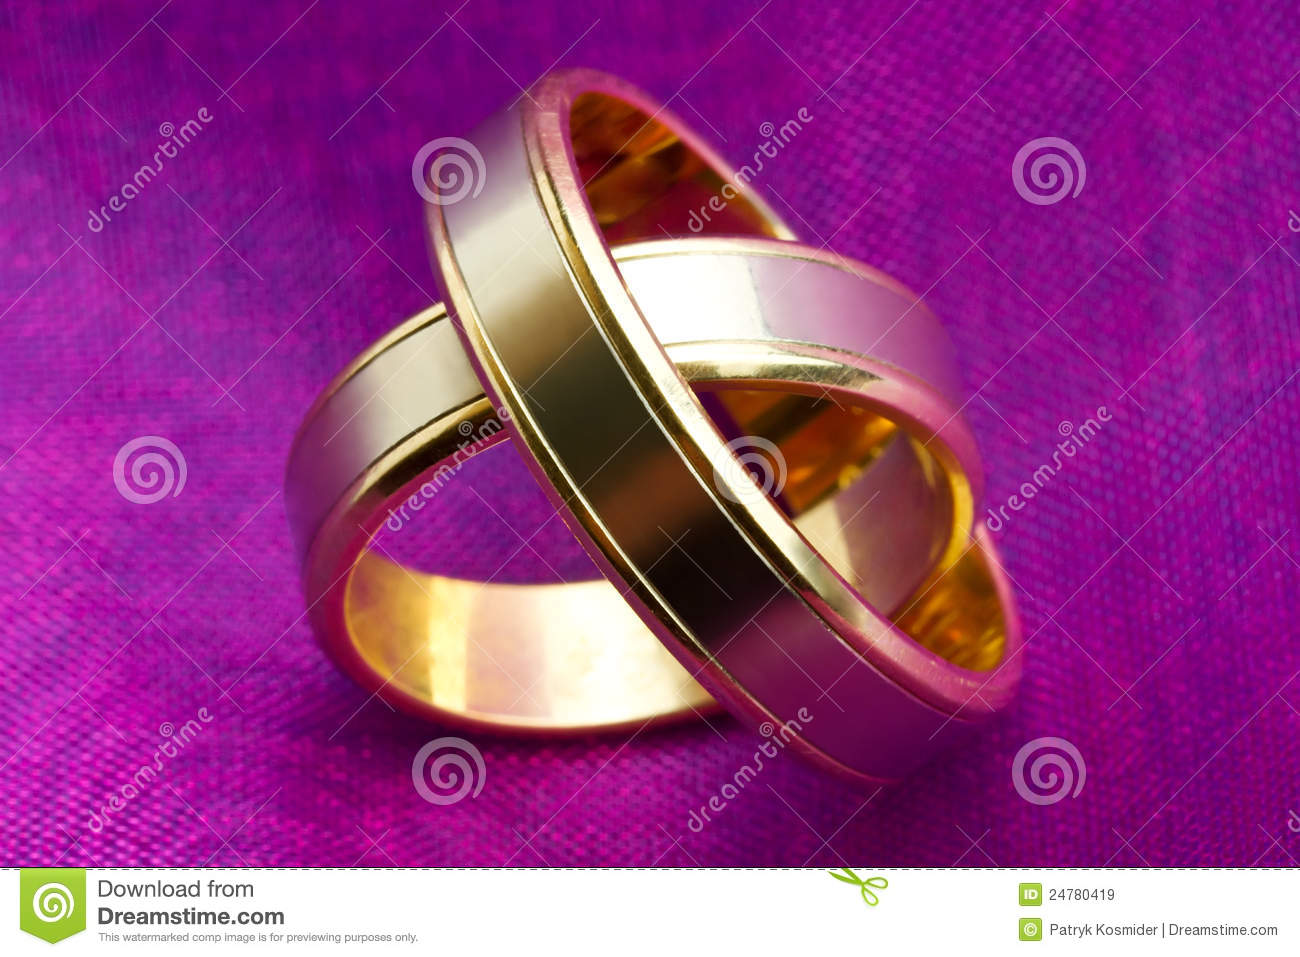 royalty free stock images wedding rings close up image purple wedding rings Wedding rings close up